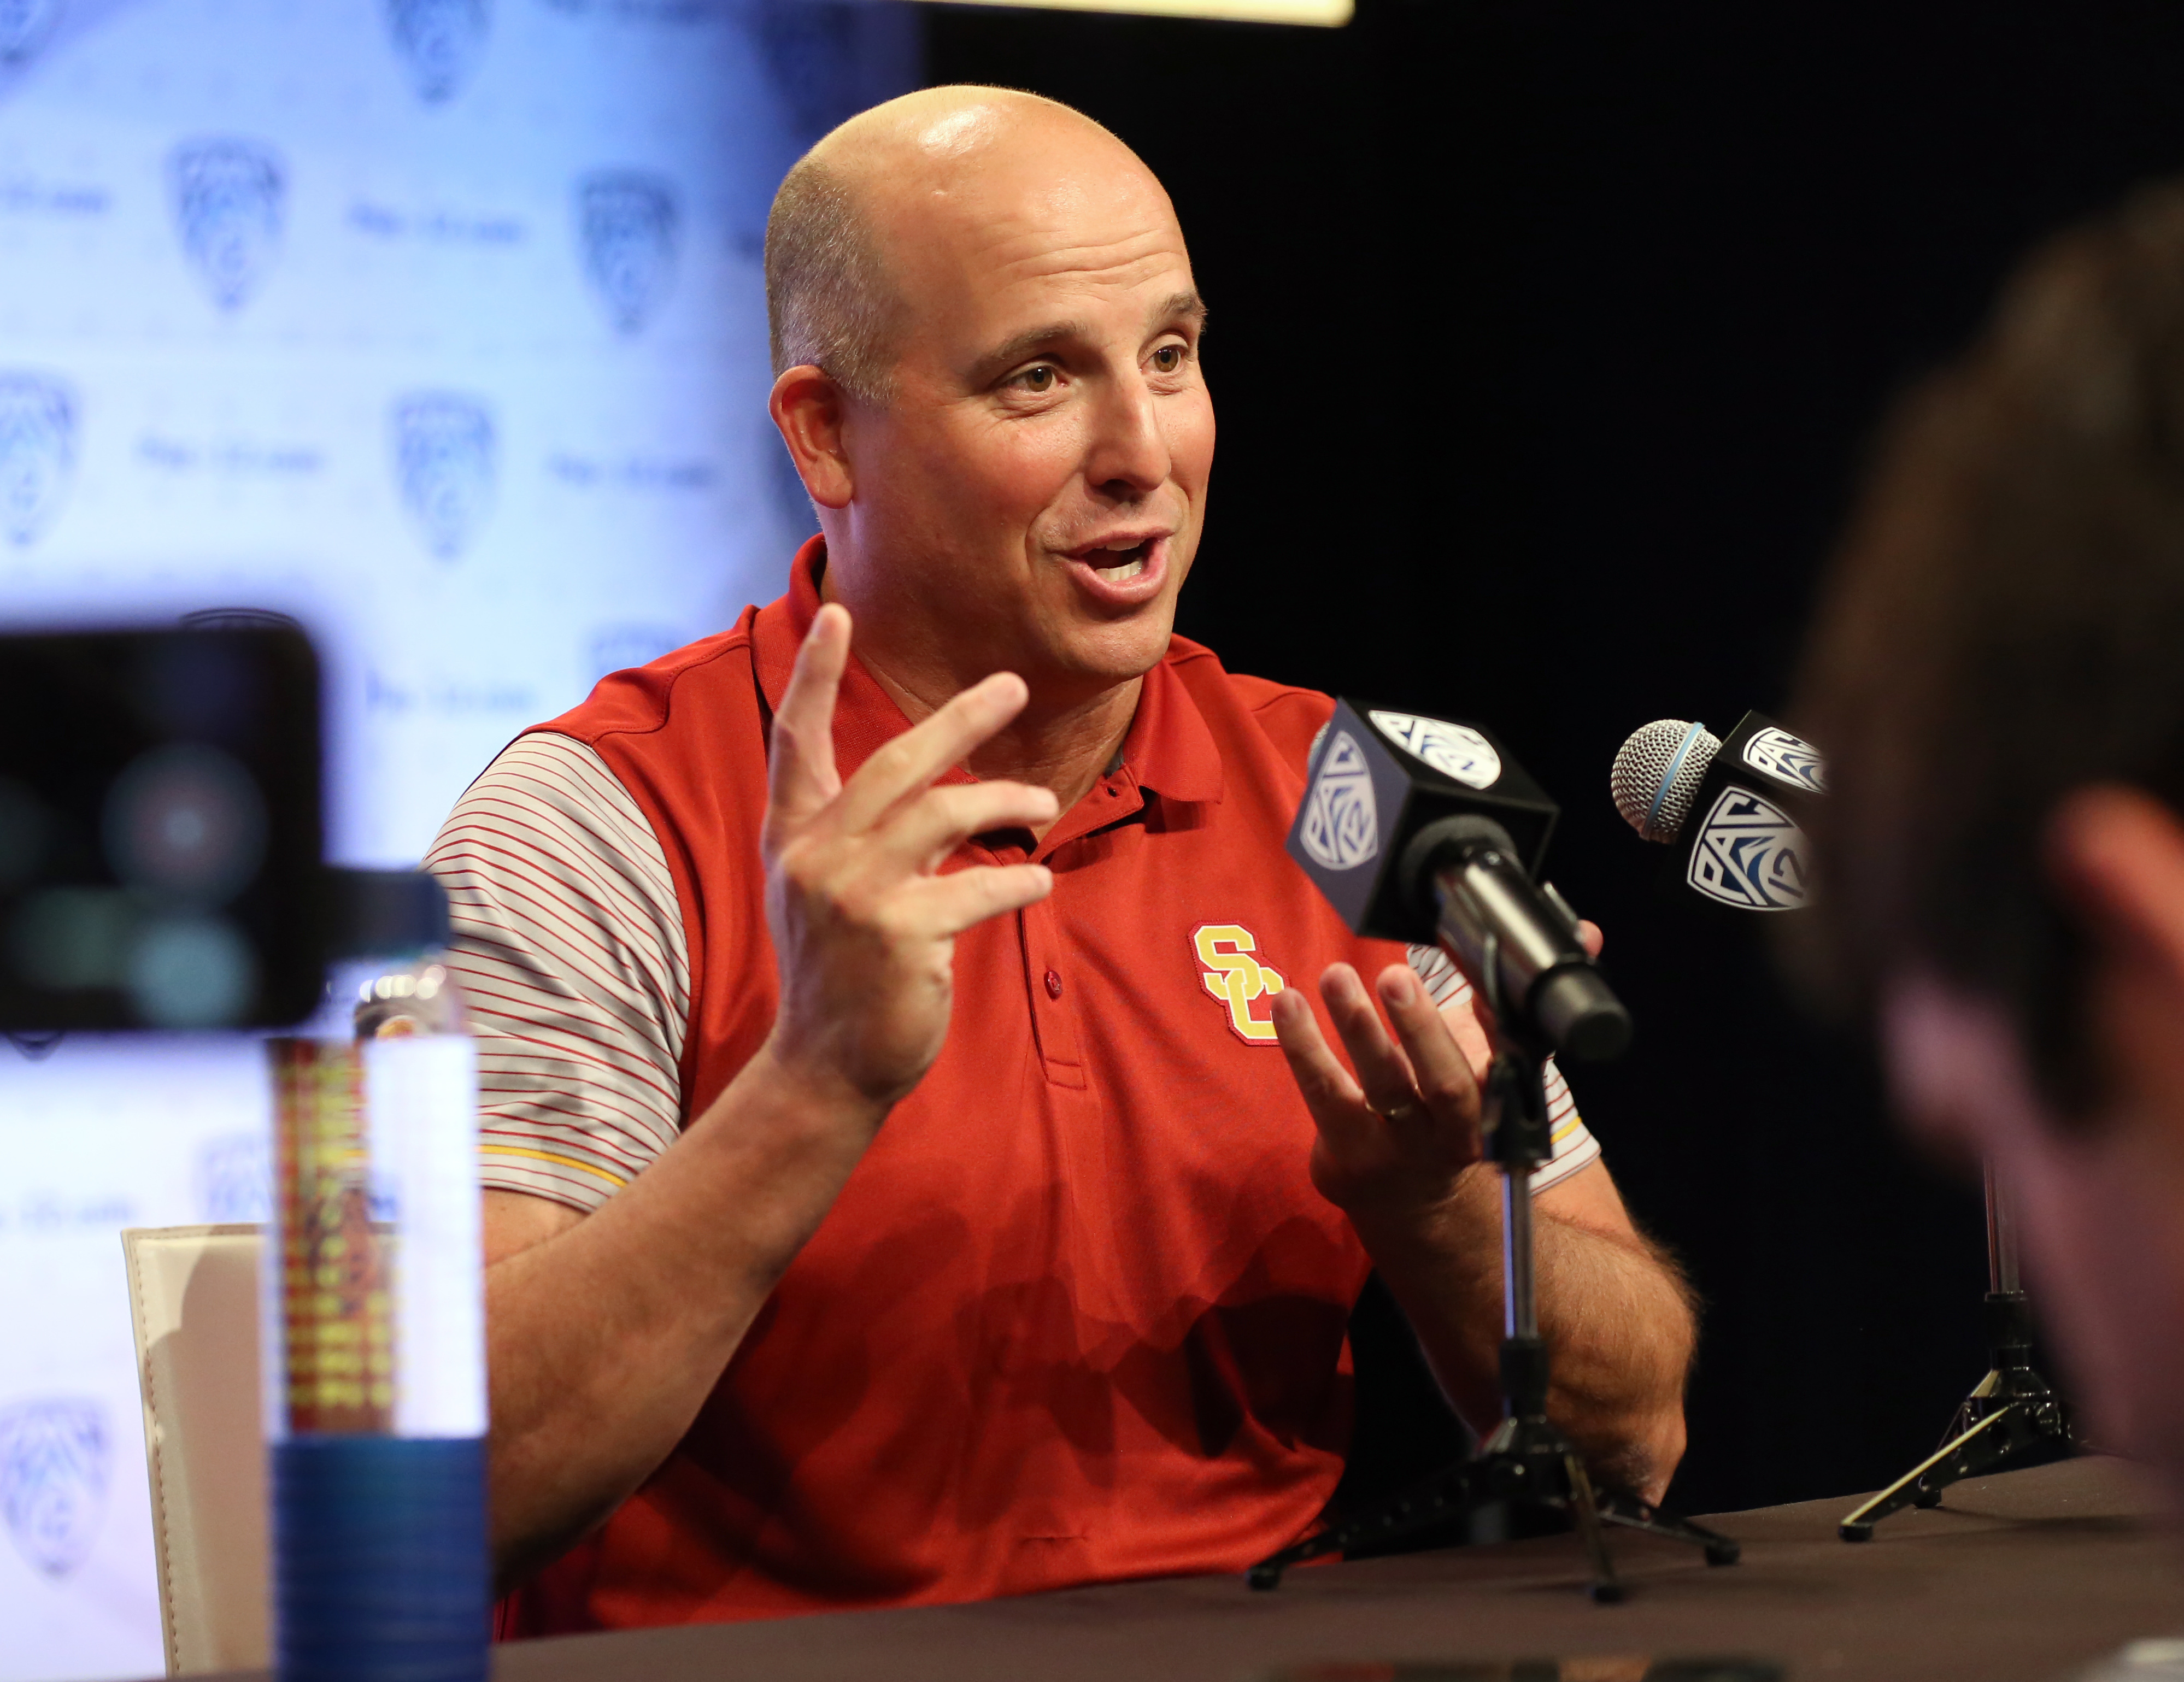 USC head coach Clay Helton talks about 'juggling' several roles during his time at USC as he speaks to reporters at the Pac-12 NCAA college football media day in Los Angeles Thursday, July 14, 2016. Helton was fired by the Trojans on Monday.